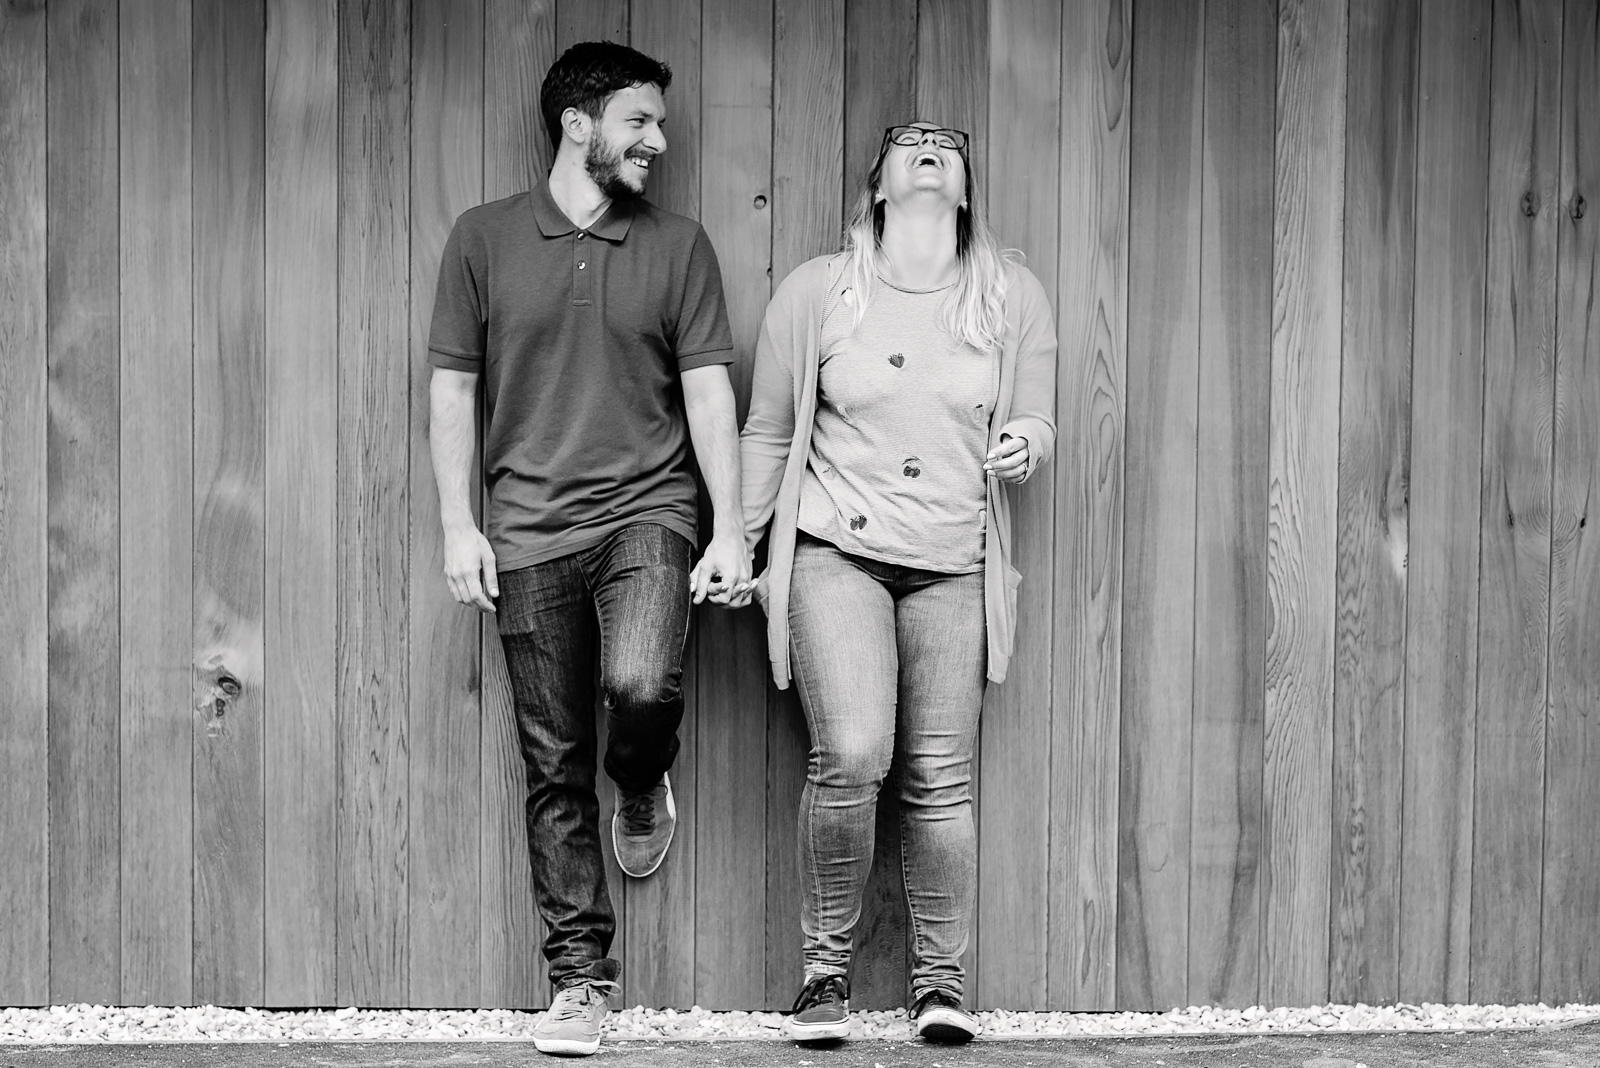 Holding hands laughing against a wooden wall - Cotswolds Wedding Photographer